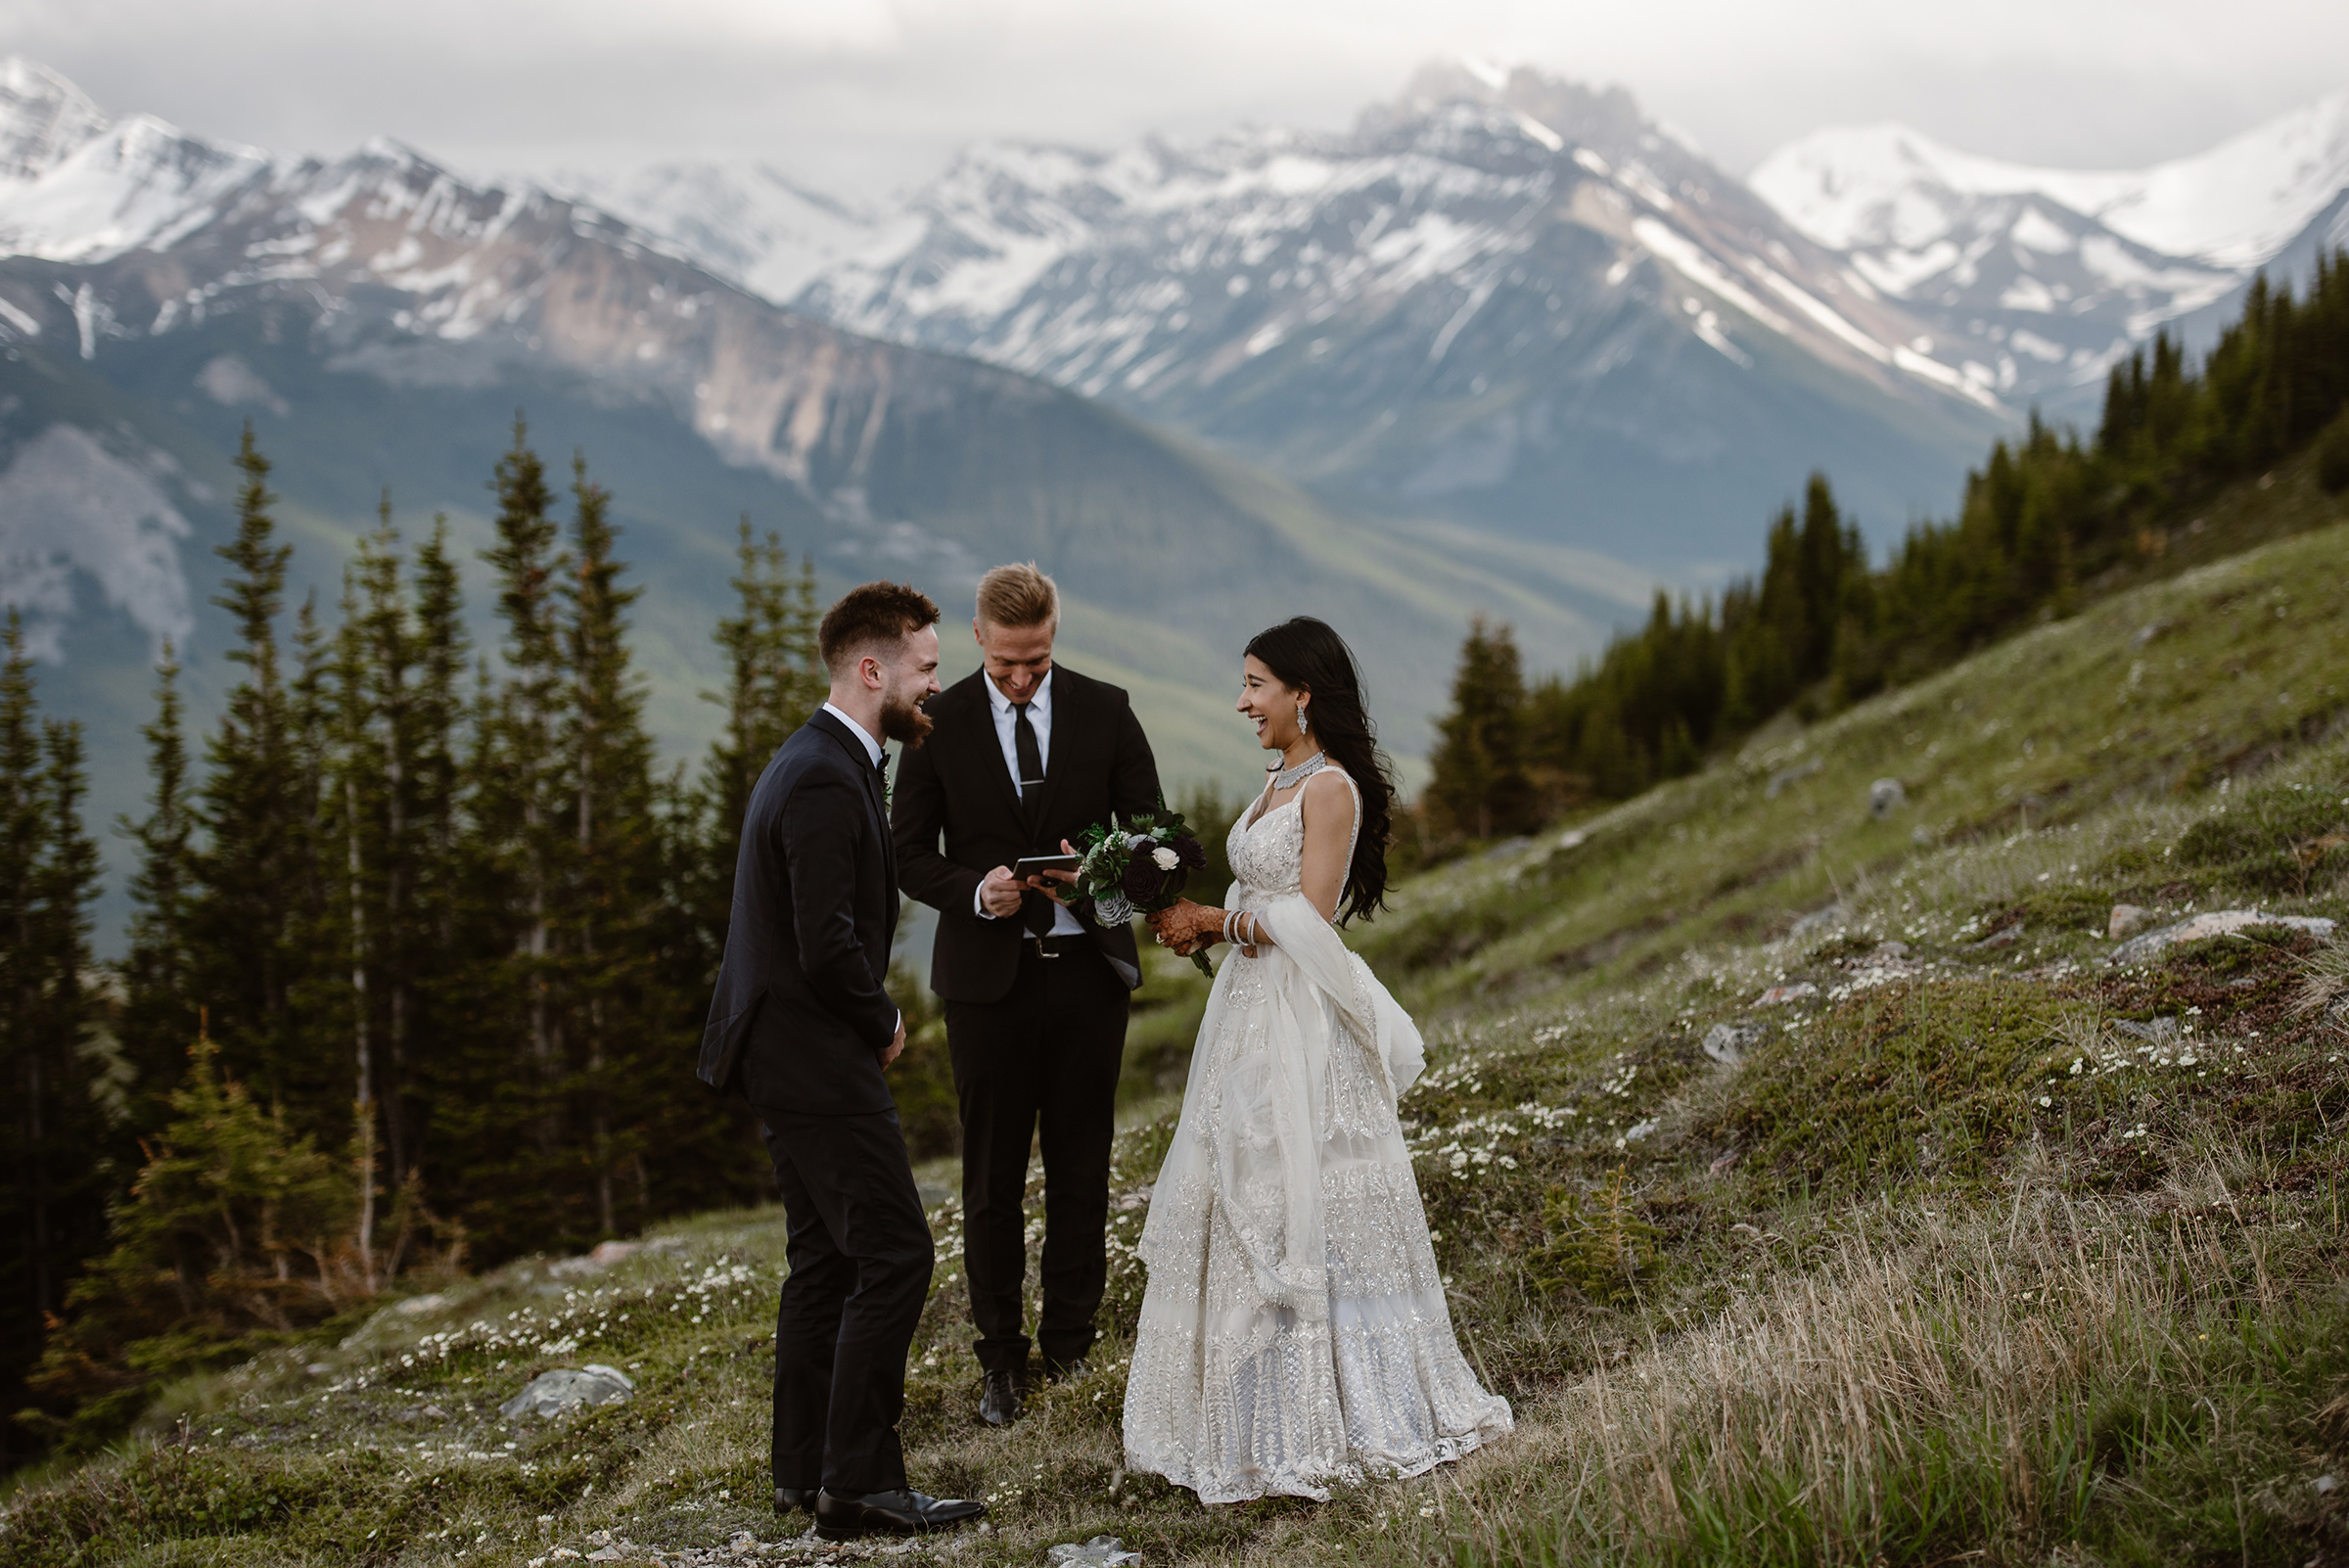 Elopement ceremony in the mountains - photo by Virginia & Evan